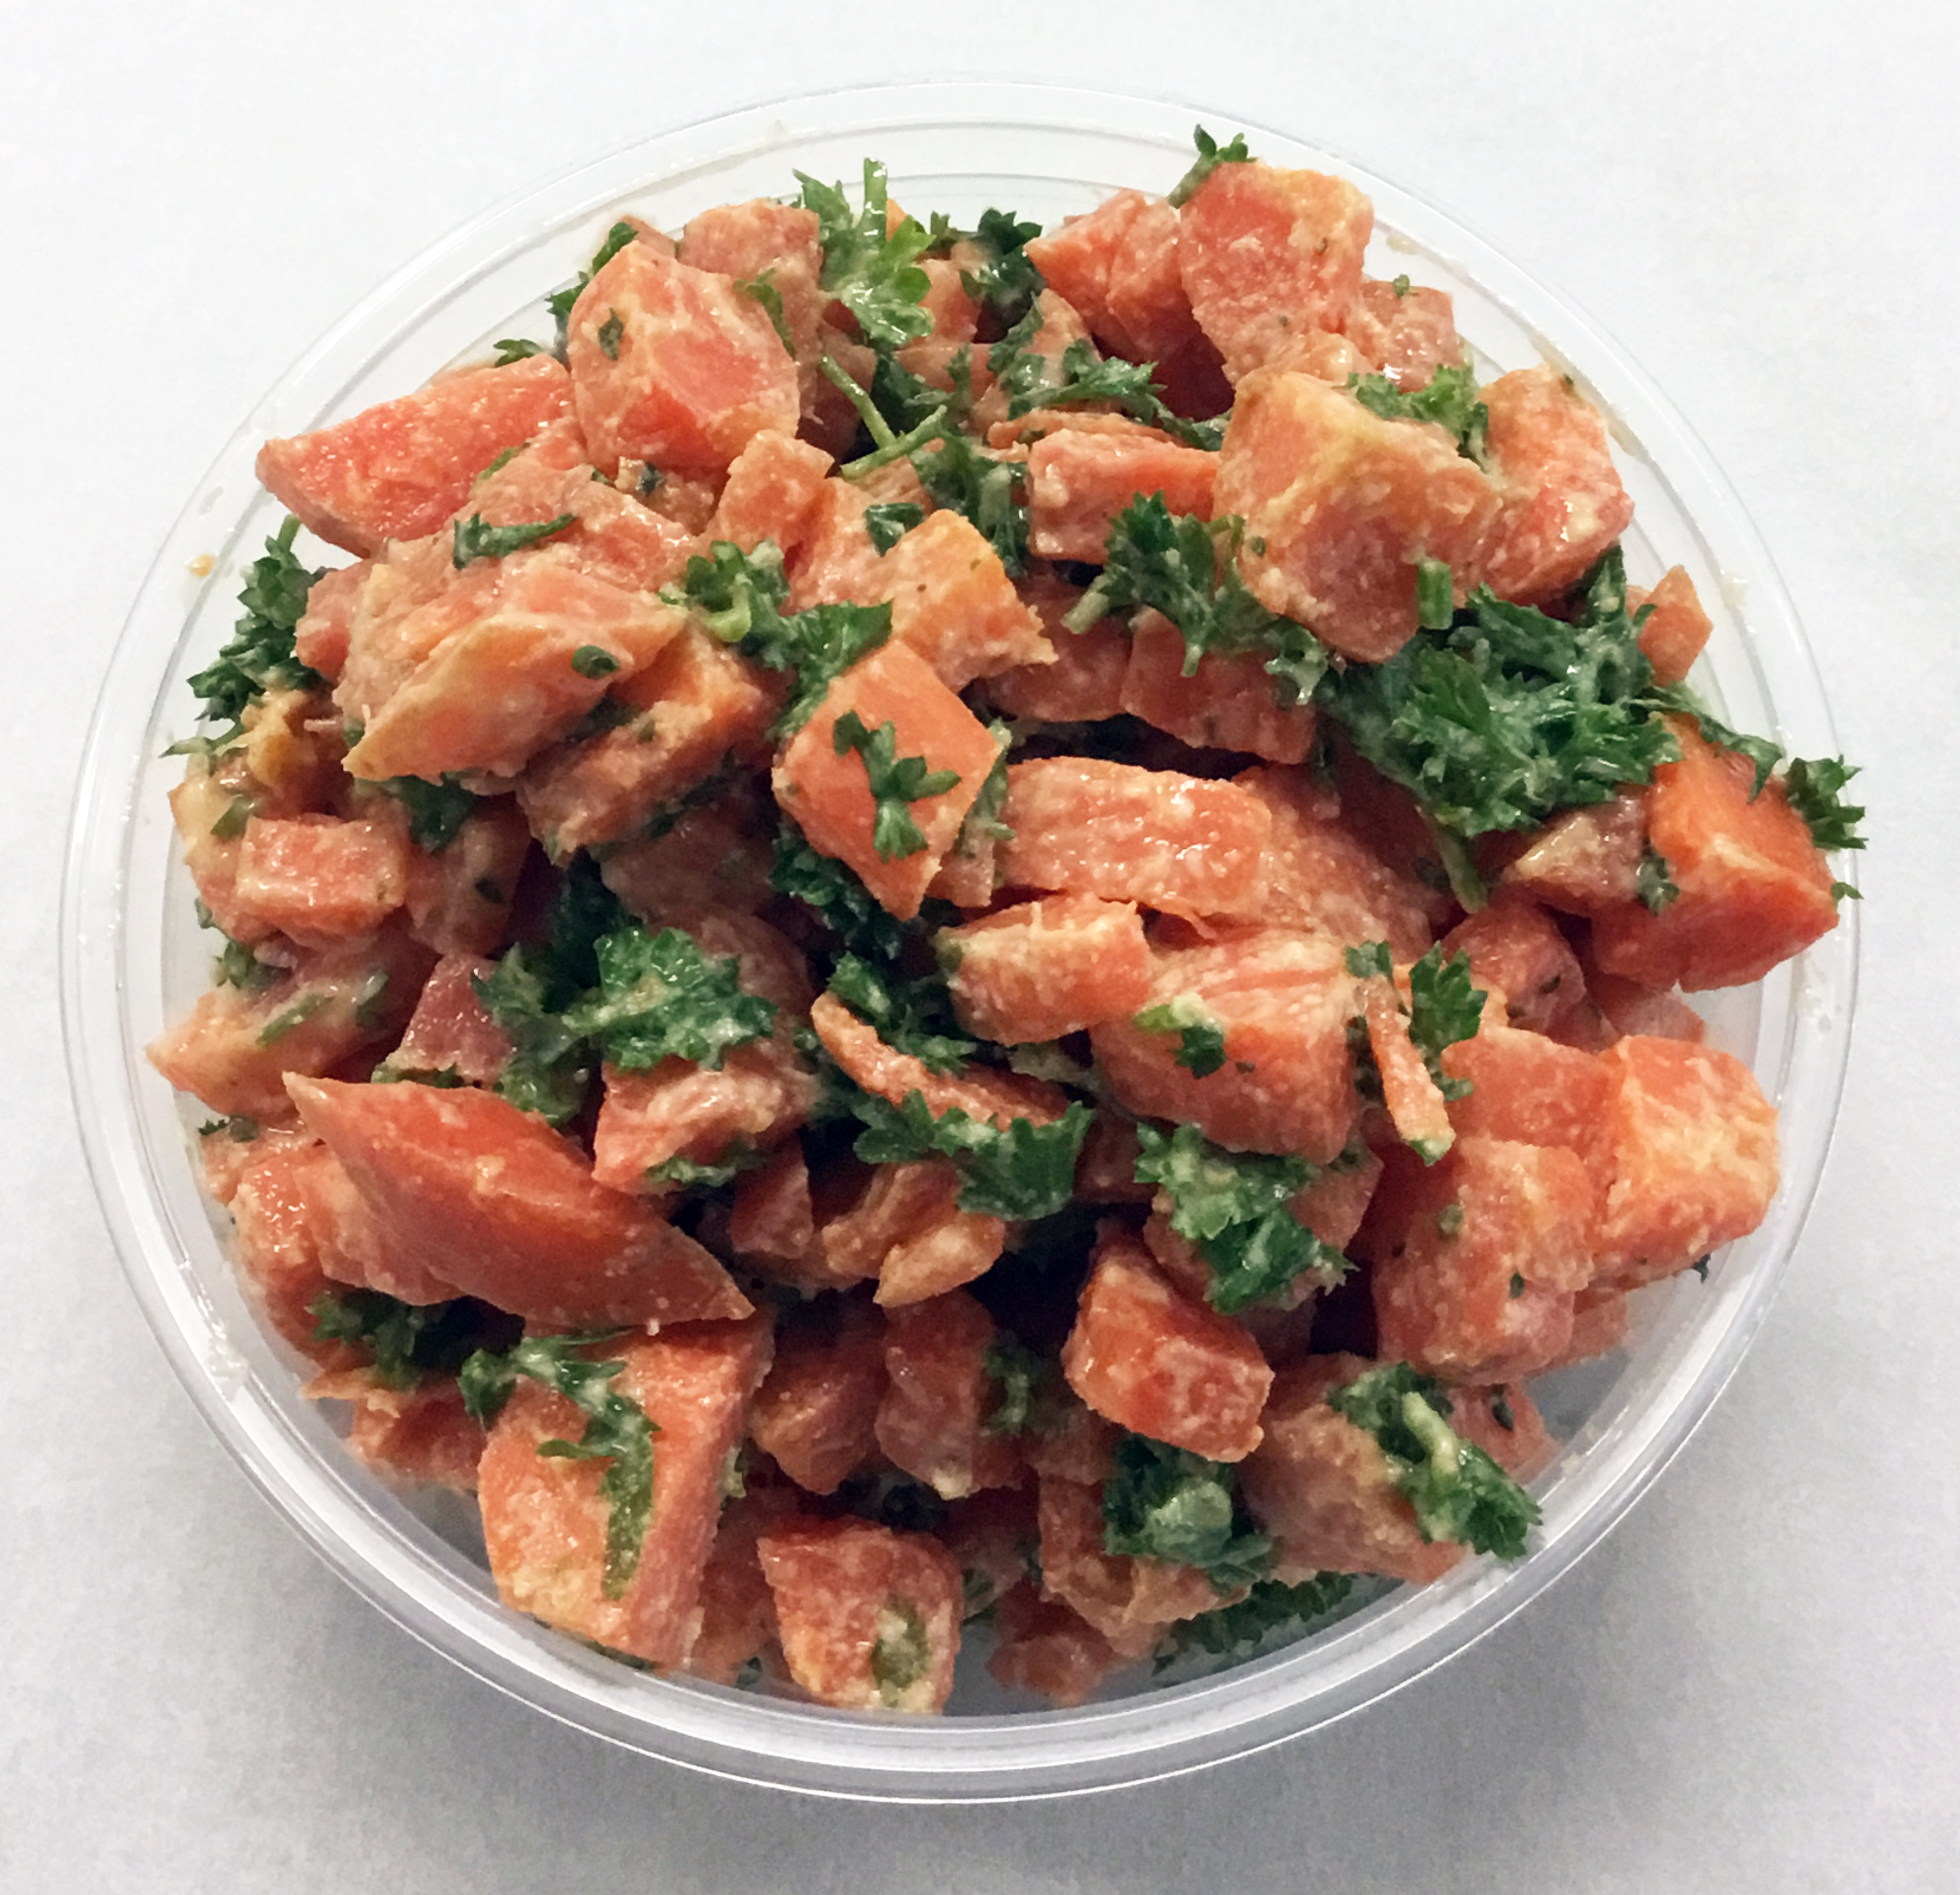 Boiled salad of carrots with parsley and a tahini and fresh squeezed lemon dressing.